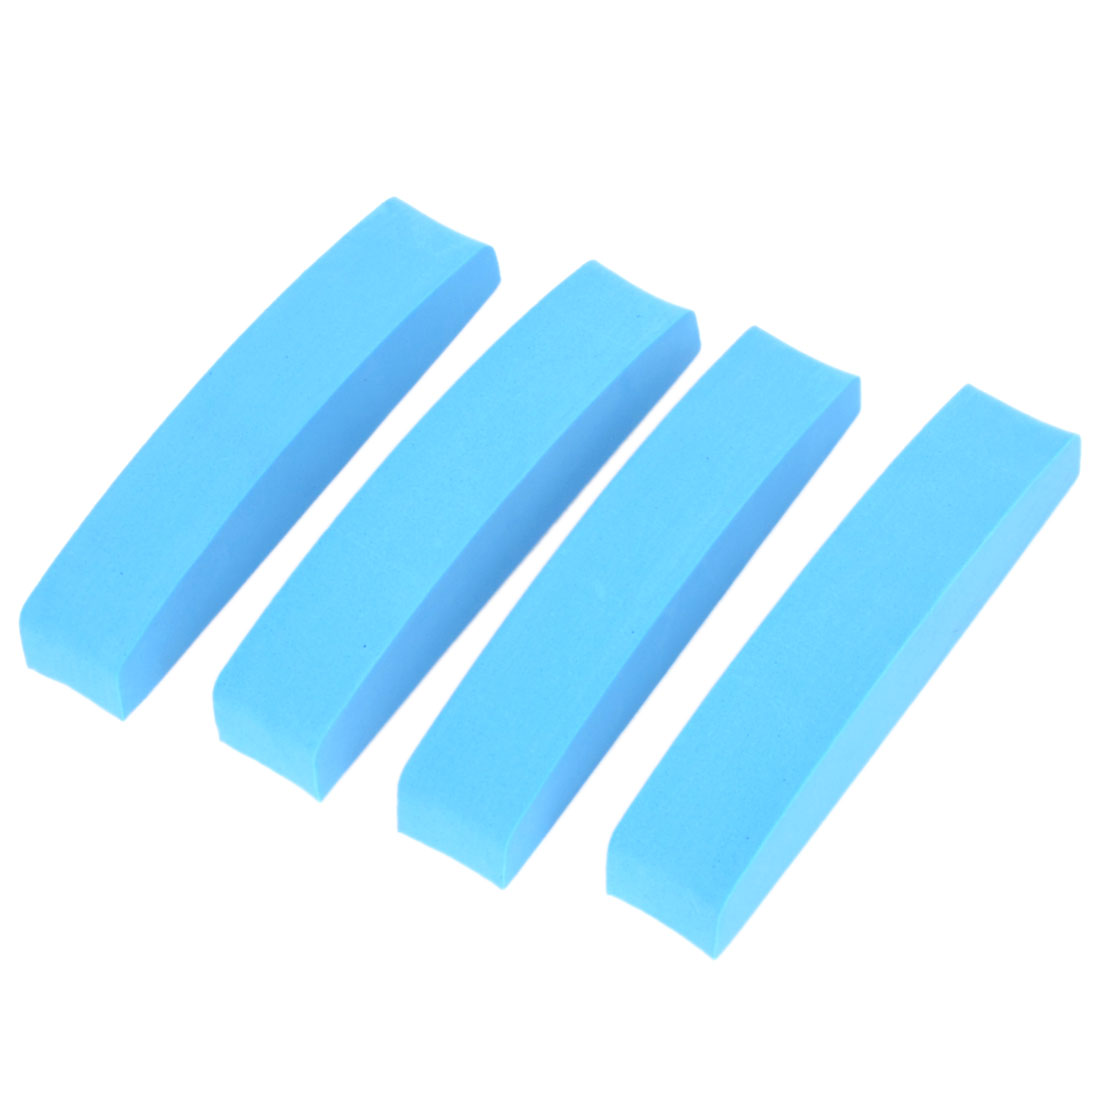 4 Pcs Blue Foam Vehicle Truck Side Door Edge Protector Trim Guard Sticker